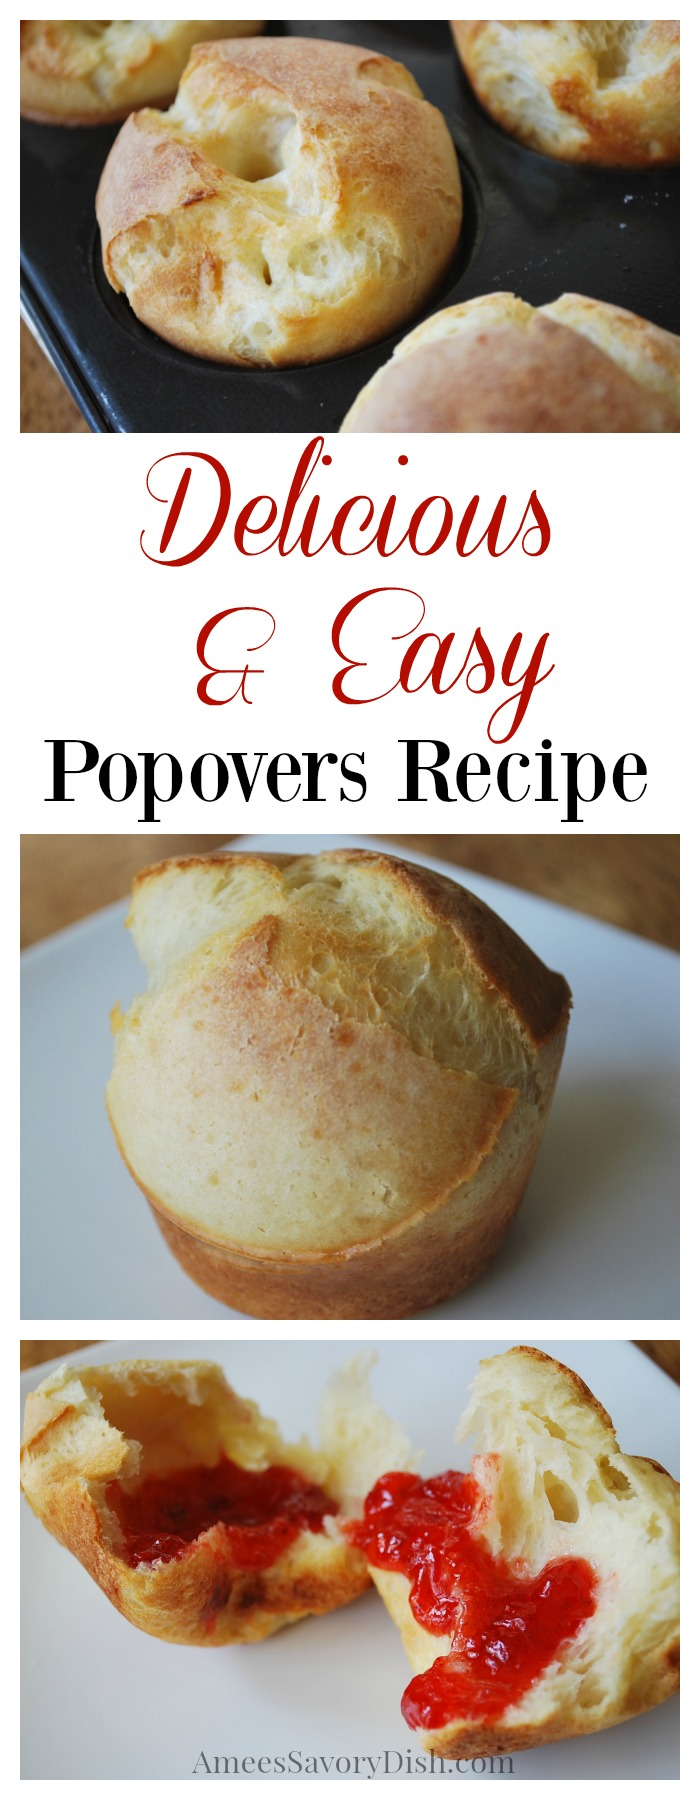 Delicious & Easy Classic Popovers Recipe